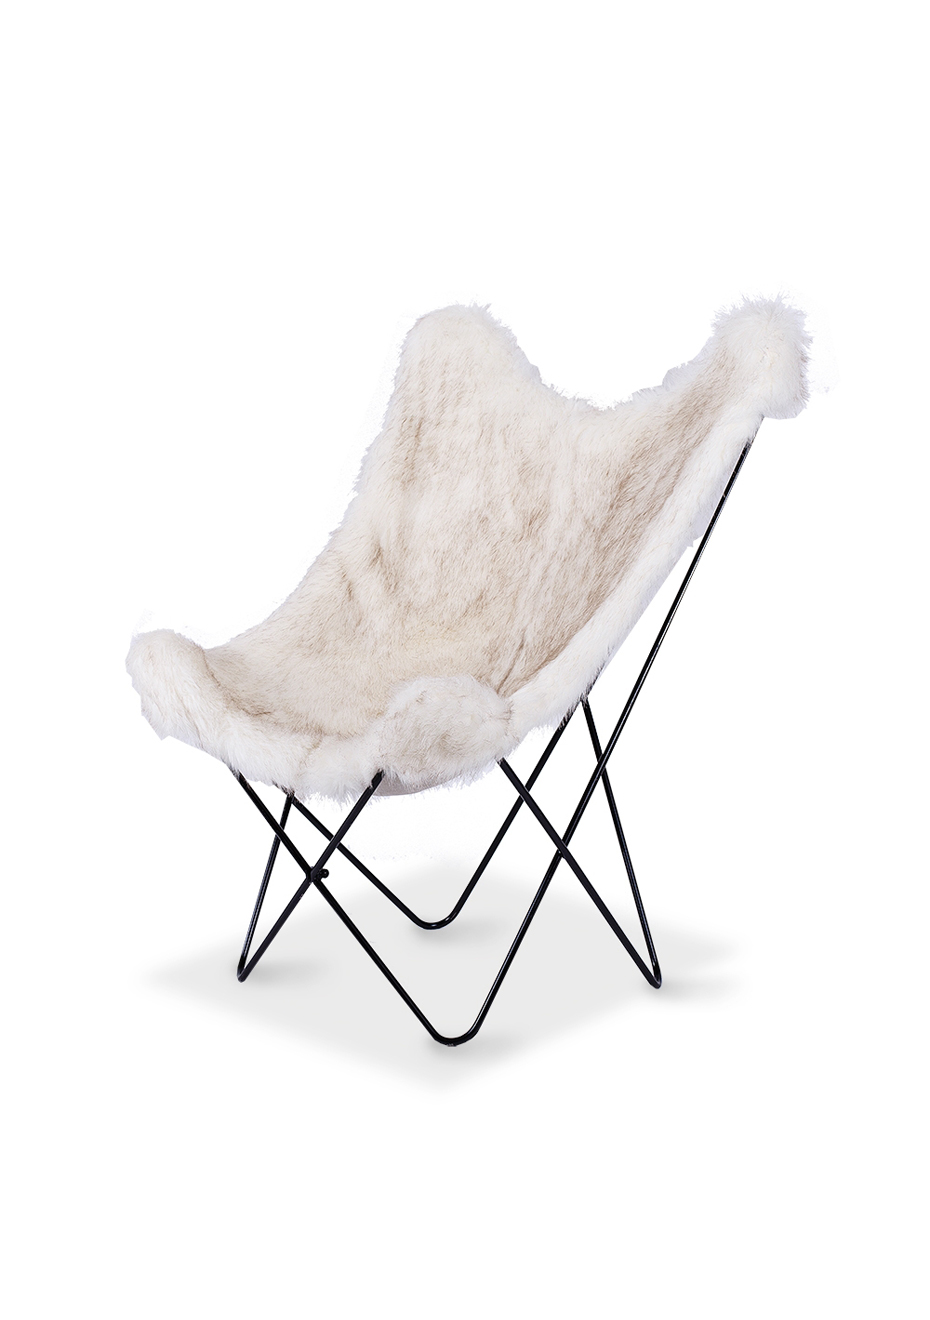 white fuzzy chair diy wood refinishing furniture by design butterfly arctic